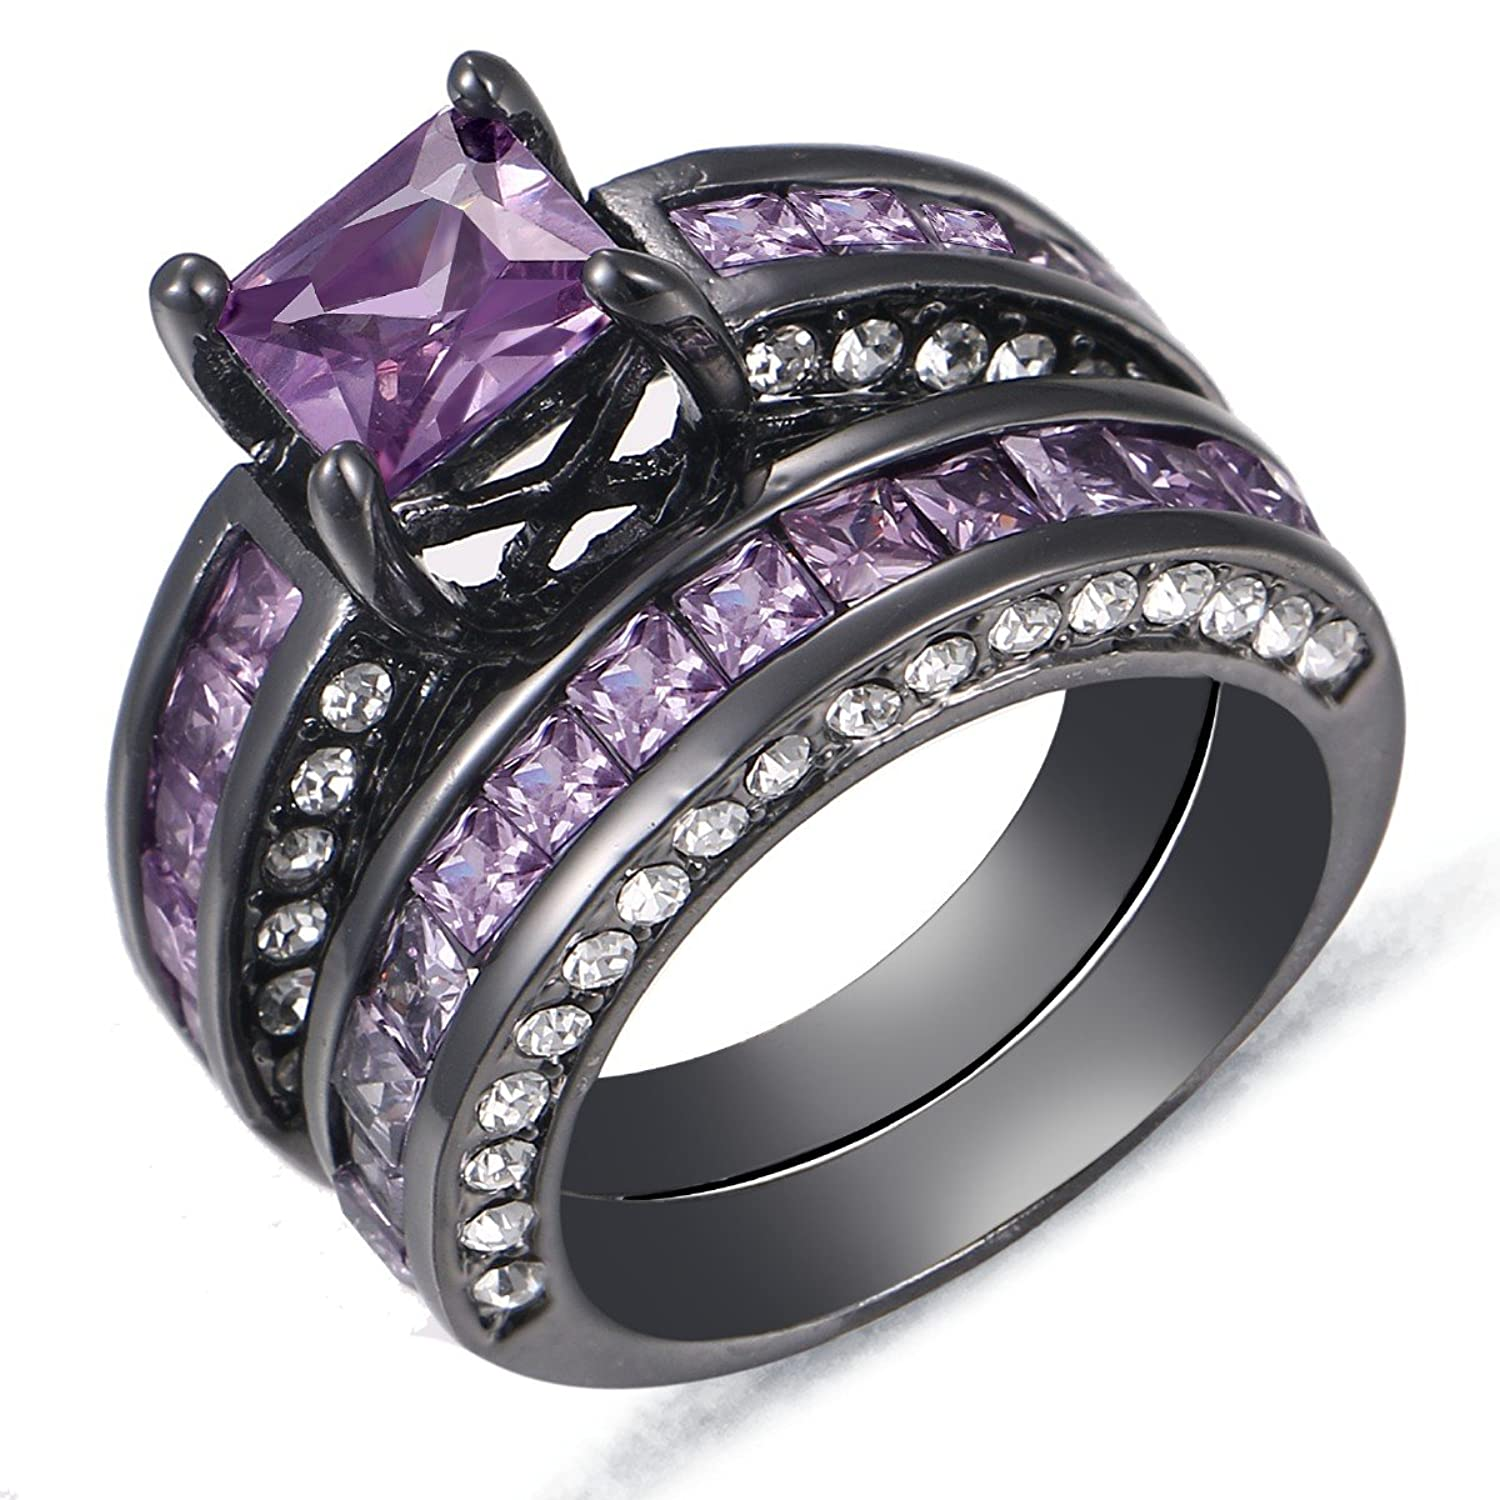 harriet rings kelsall engagement purple ring